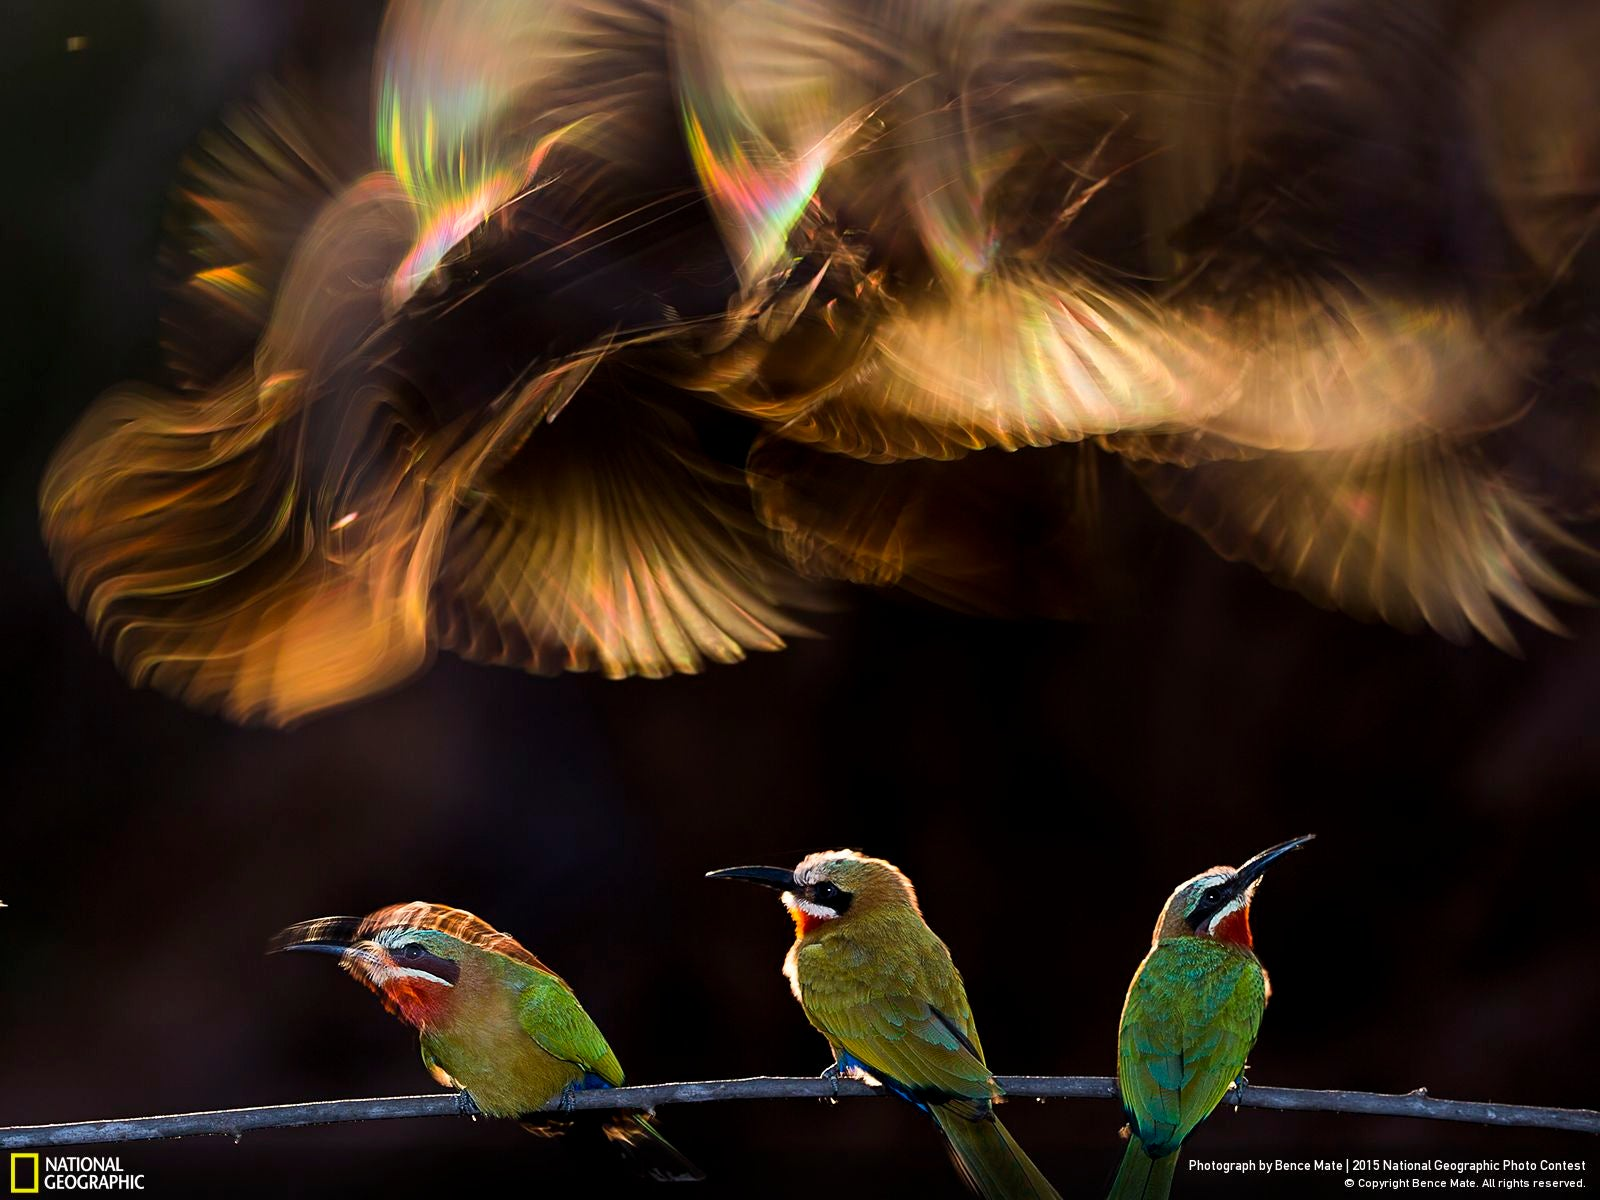 The Coolest Images From National Geographic's 2015 Photo Contest